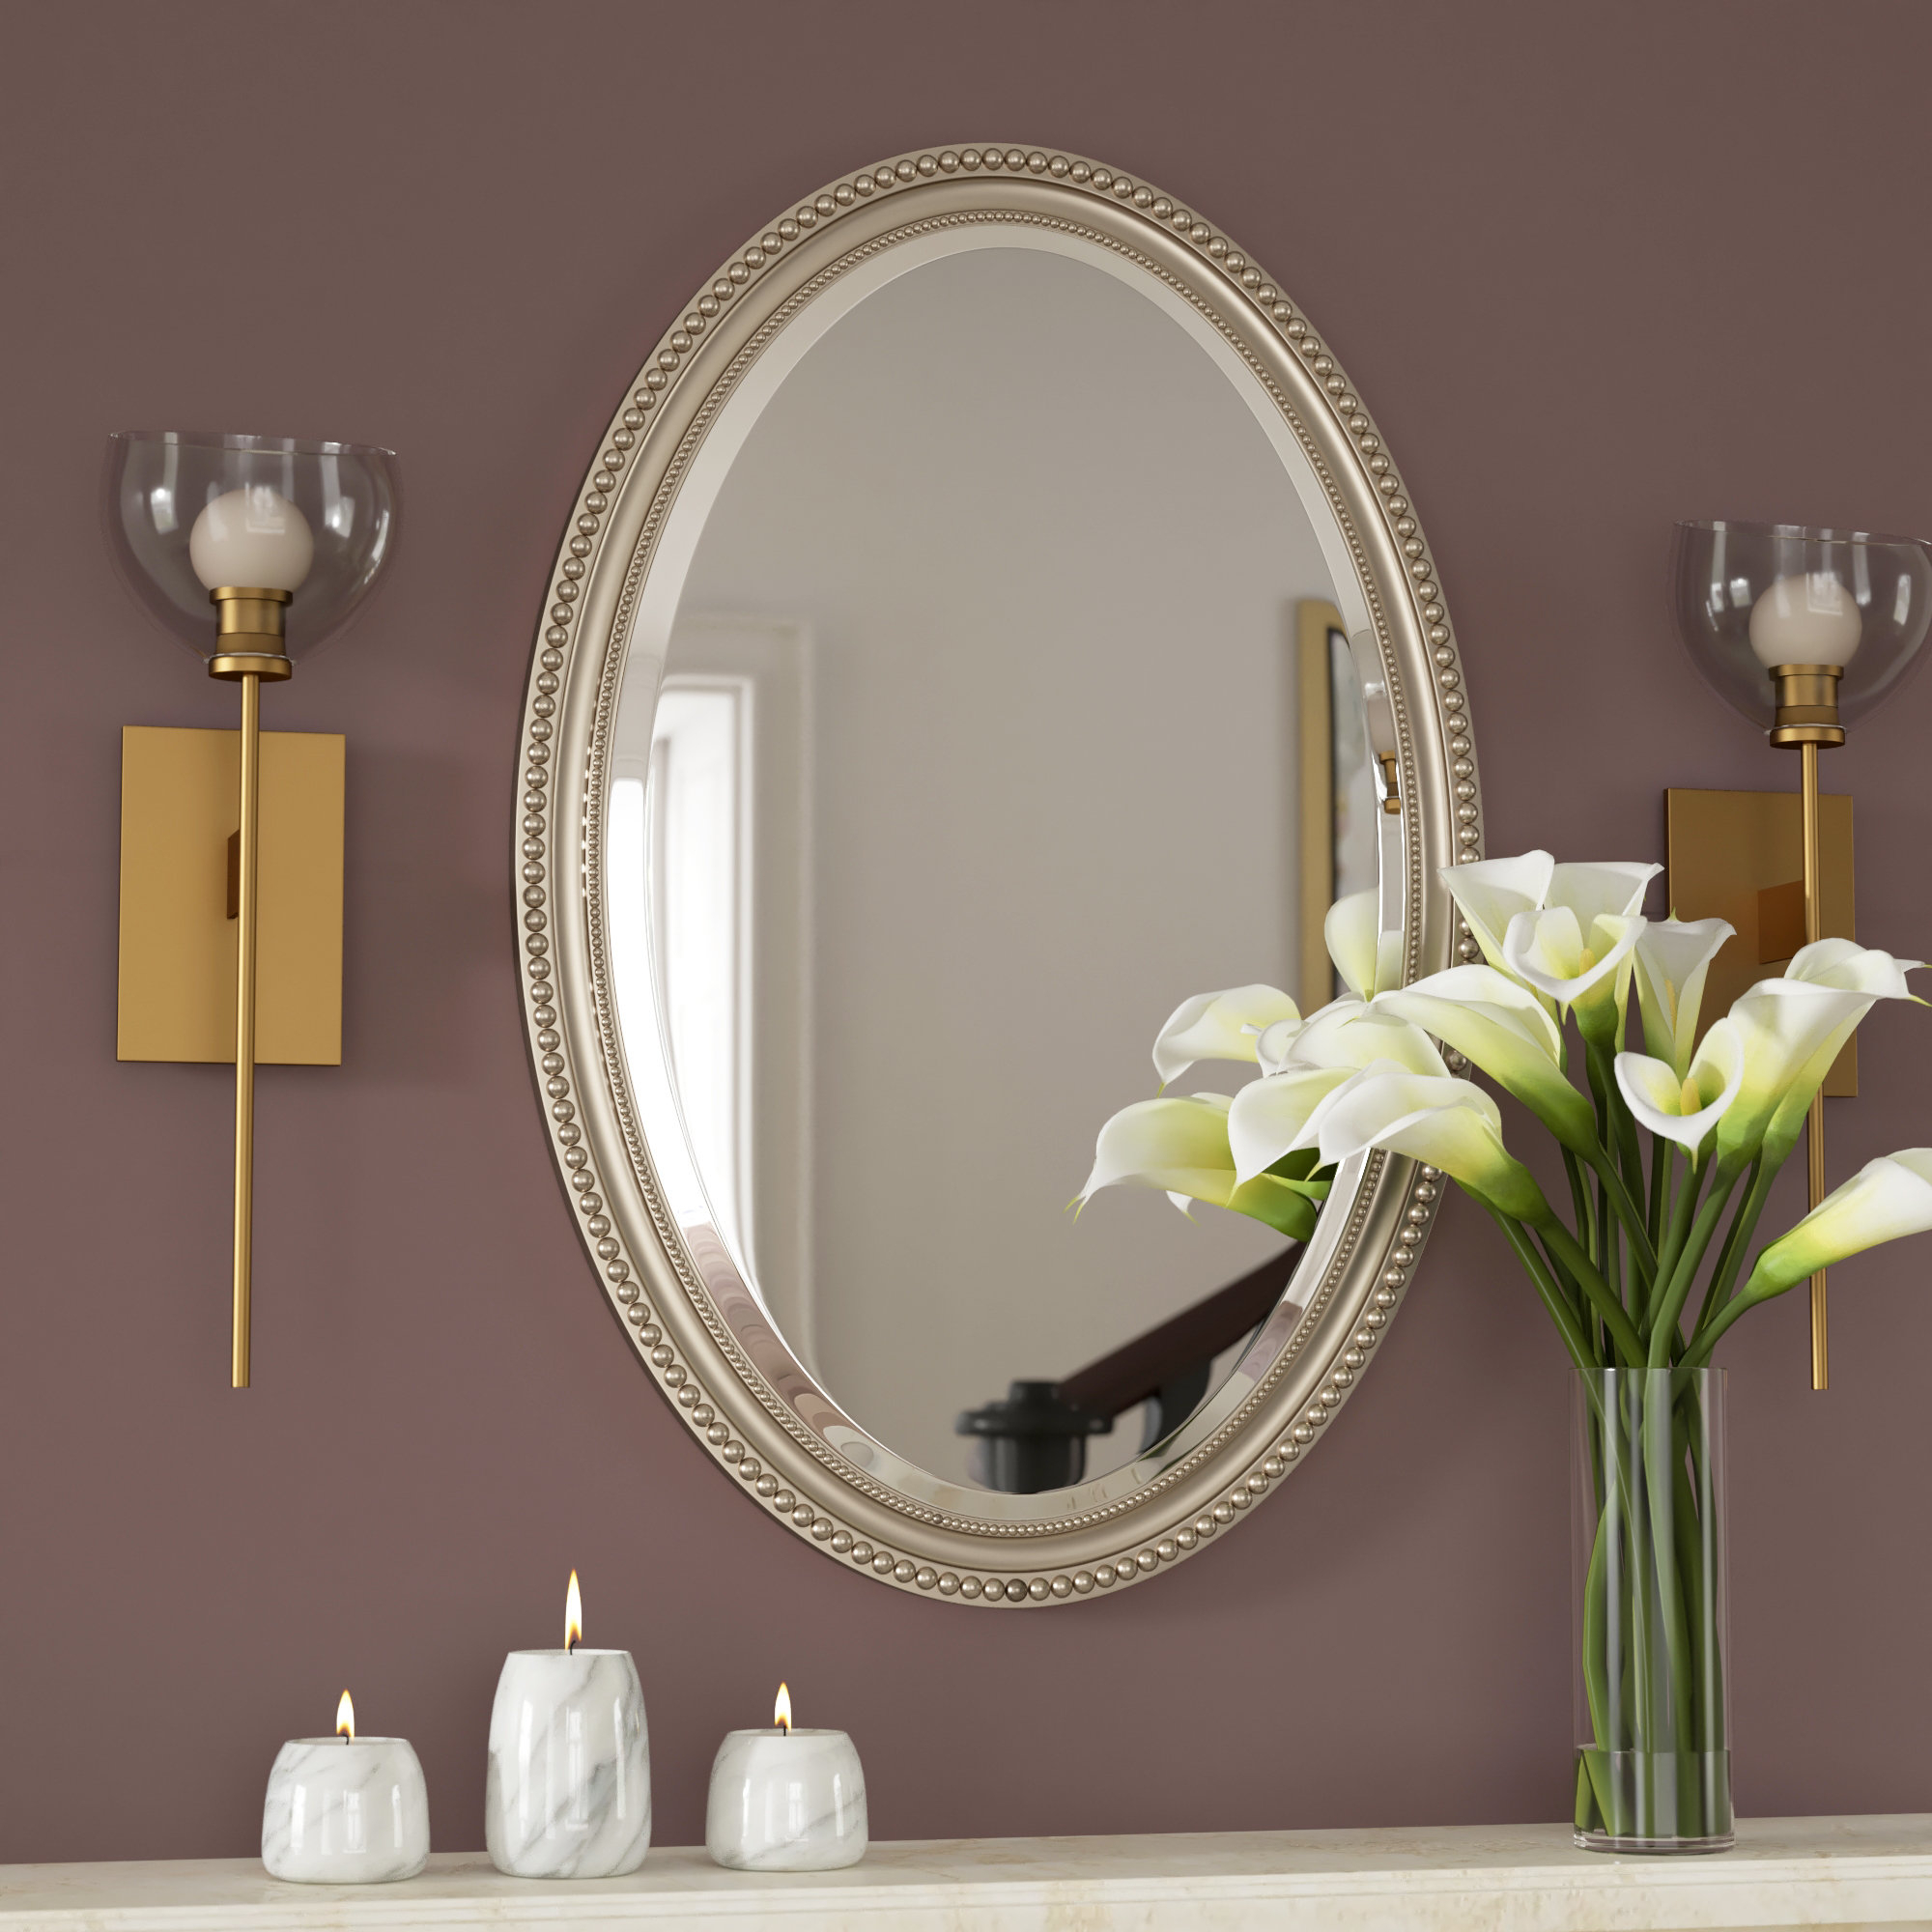 Beaded Oval Mirror | Wayfair Intended For Glen View Beaded Oval Traditional Accent Mirrors (View 6 of 20)